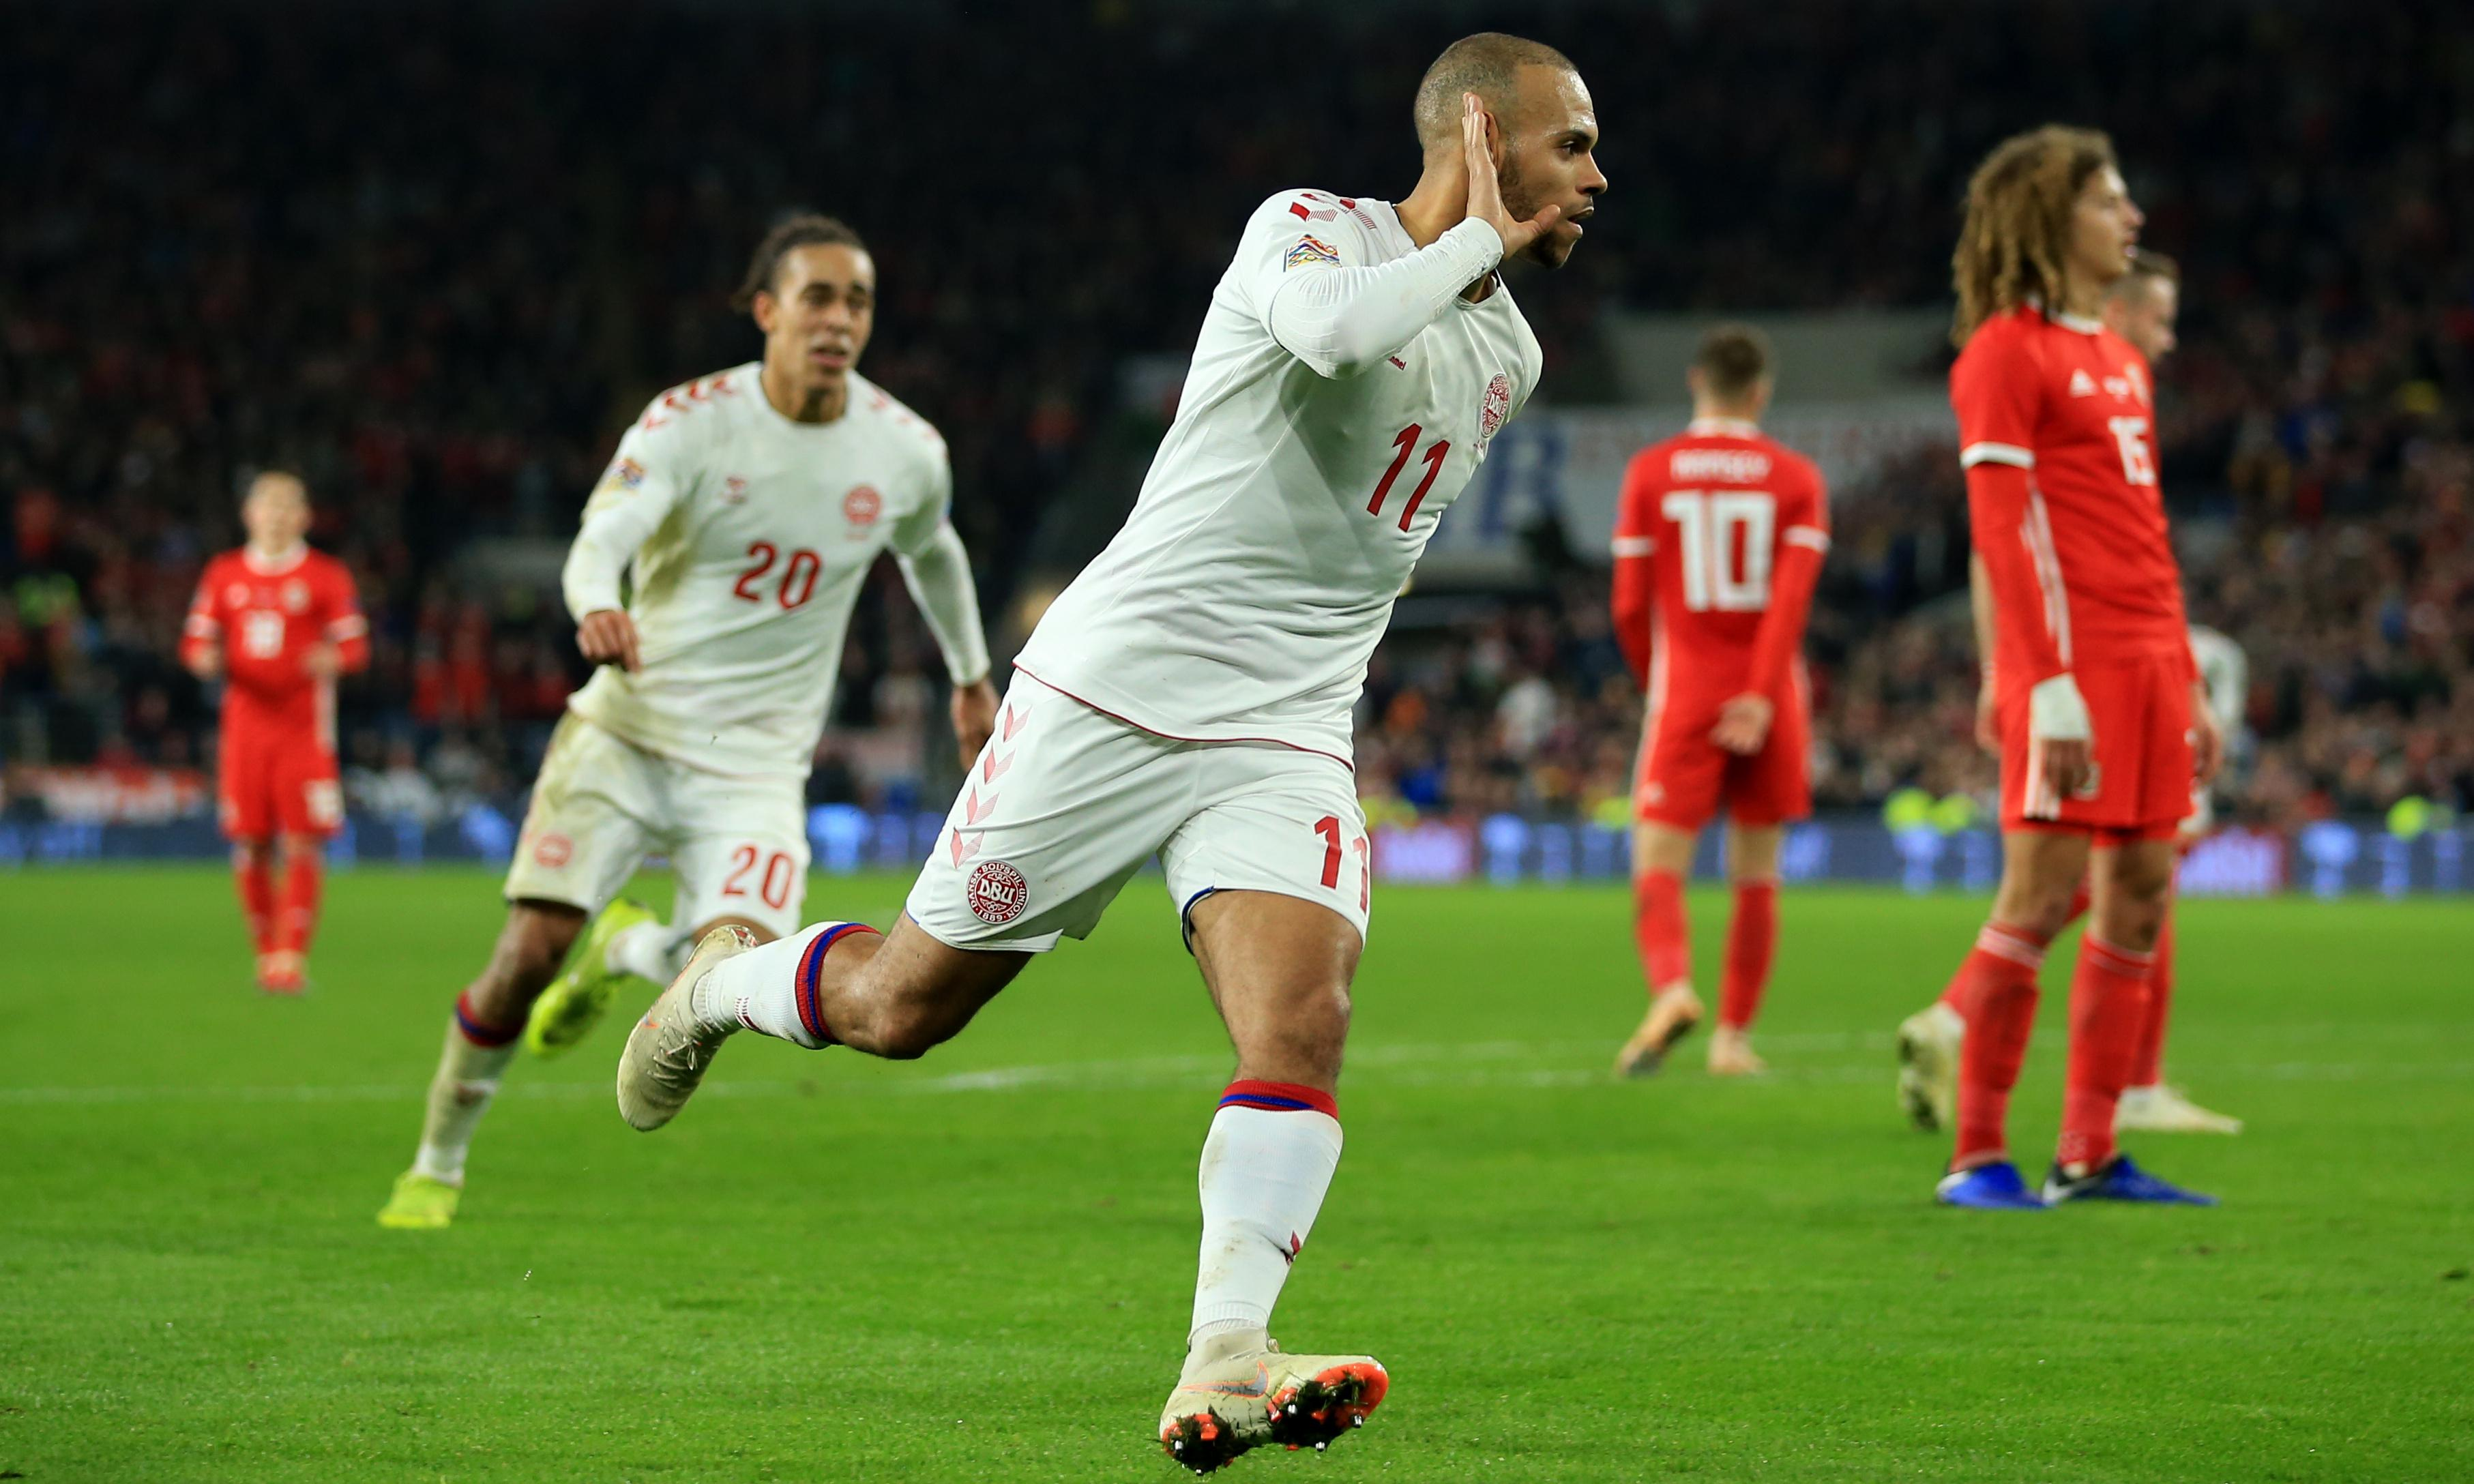 Denmark hold on for promotion after Gareth Bale scores in frantic finale